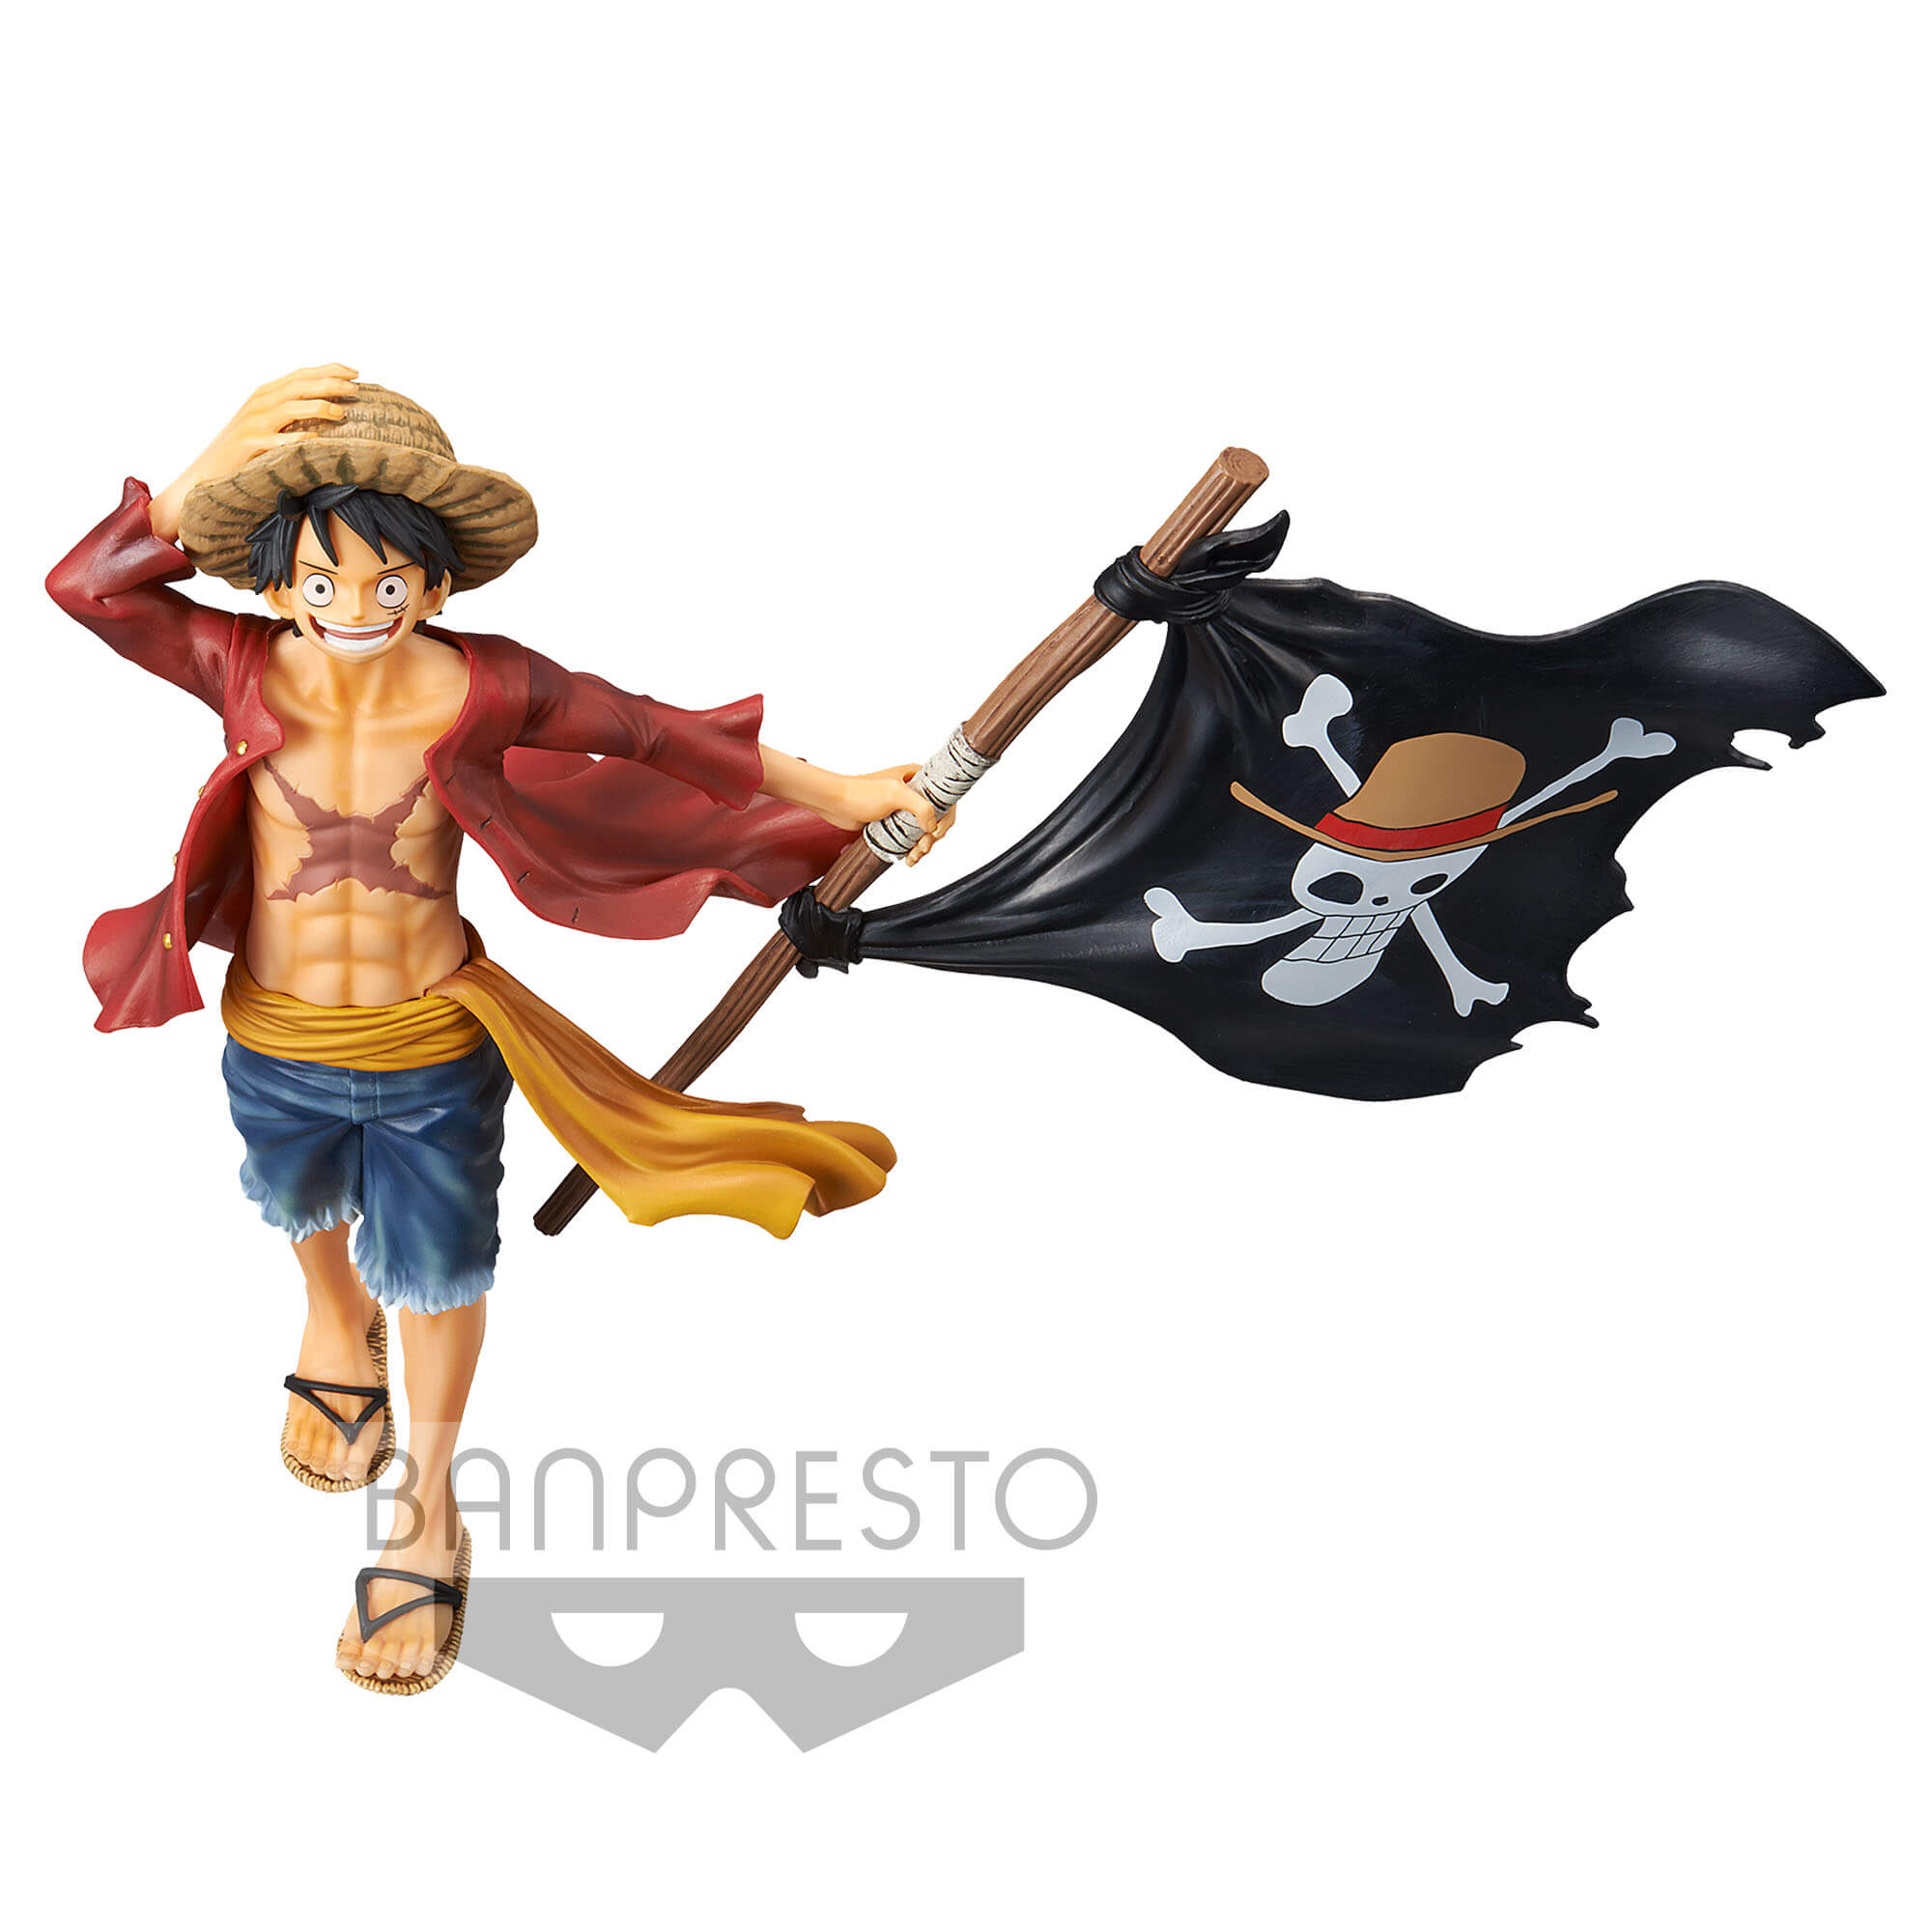 Banpesto One Piece Luffy Magazine Figure Animeworks Hatsune Miku Spring Clothes Taito